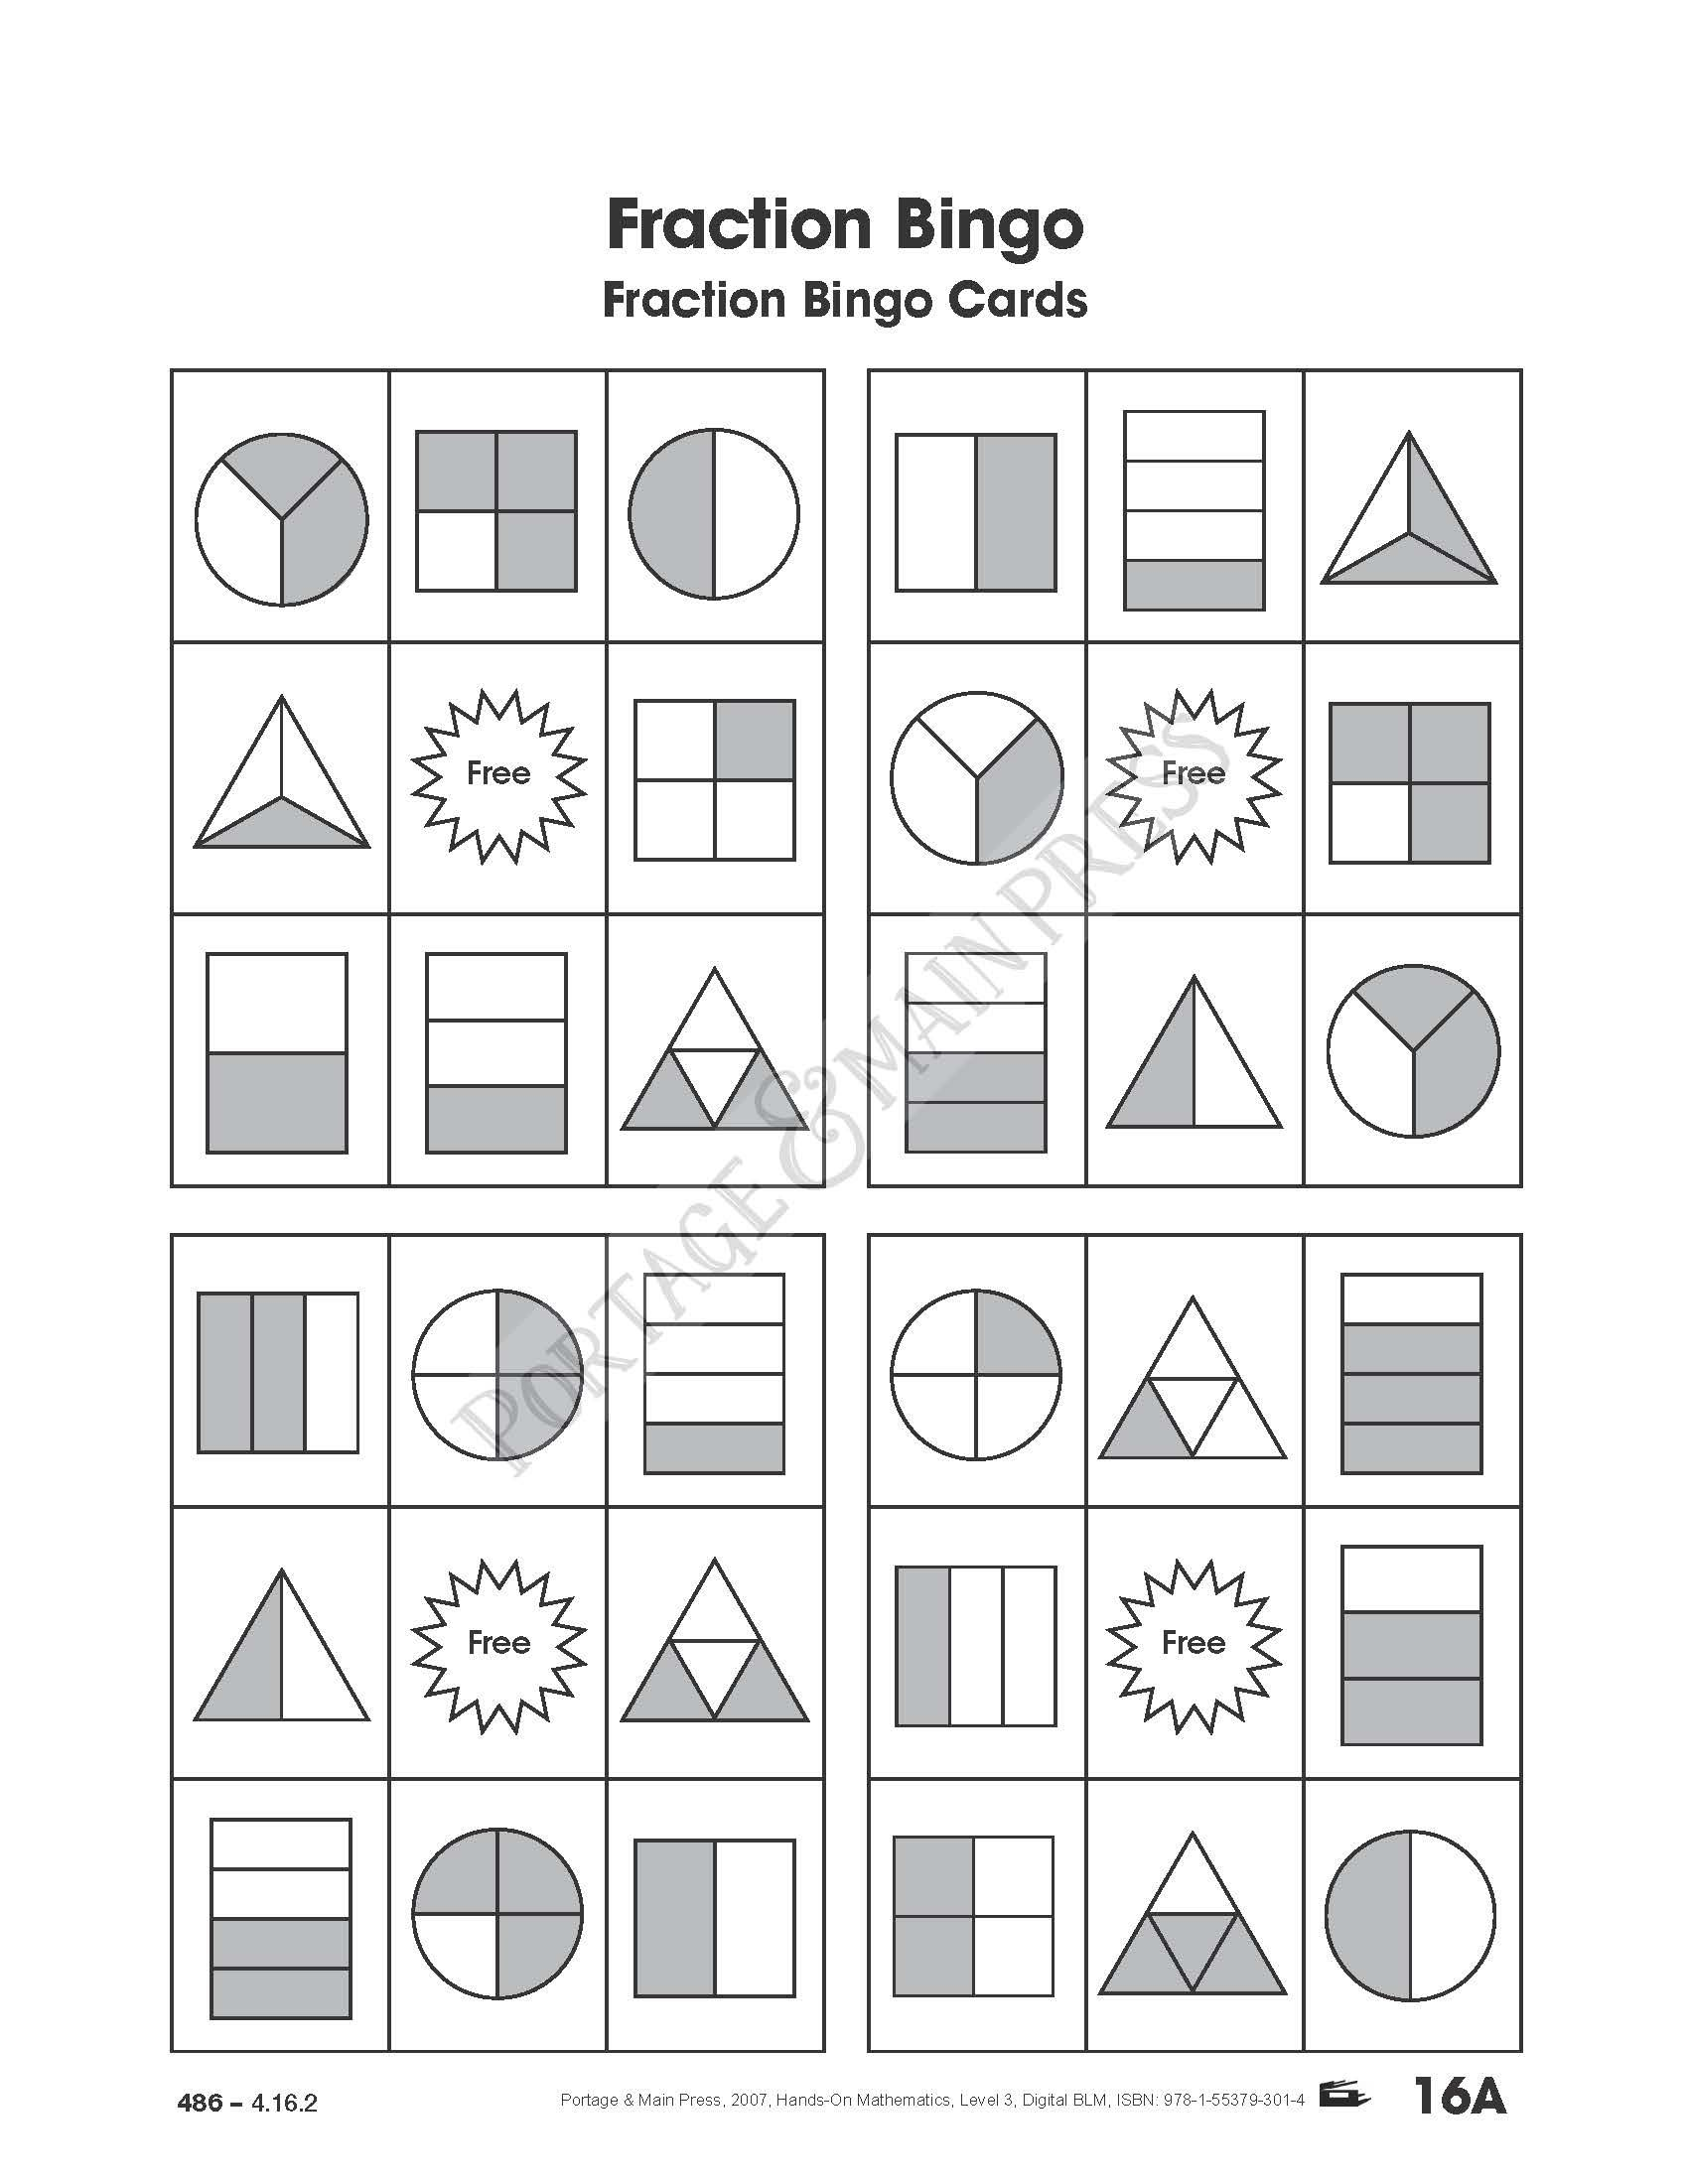 awesome math game students will love grade 3 math fraction bingo math pinterest math. Black Bedroom Furniture Sets. Home Design Ideas